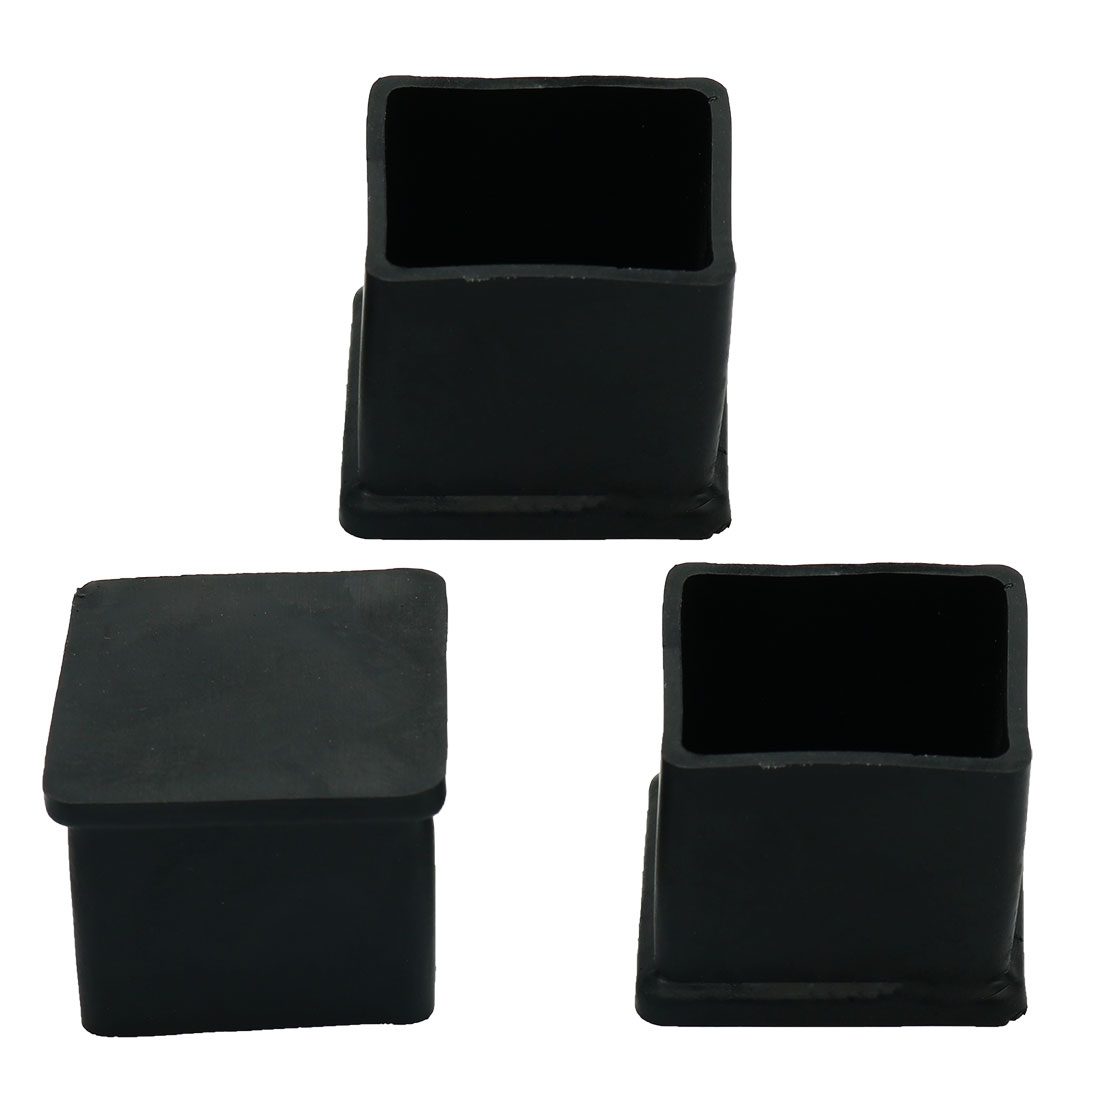 3 Pcs Furniture Chair Table Leg Rubber Foot Covers Protectors 30mm x 30mm